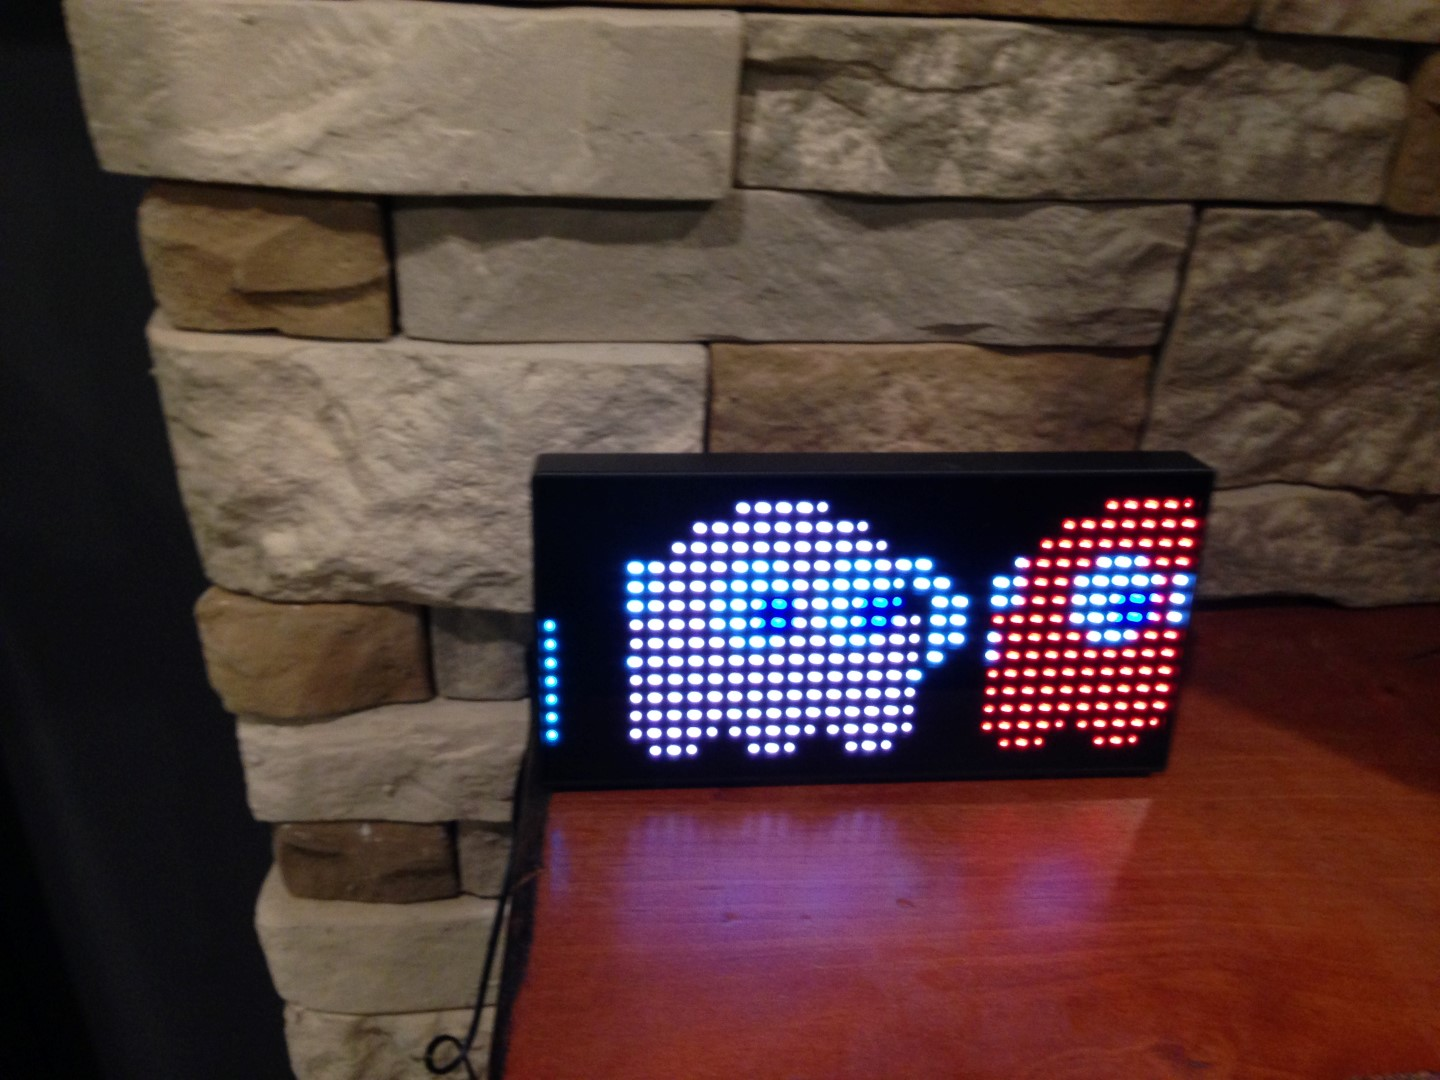 Pac-man clock ghosts moving through